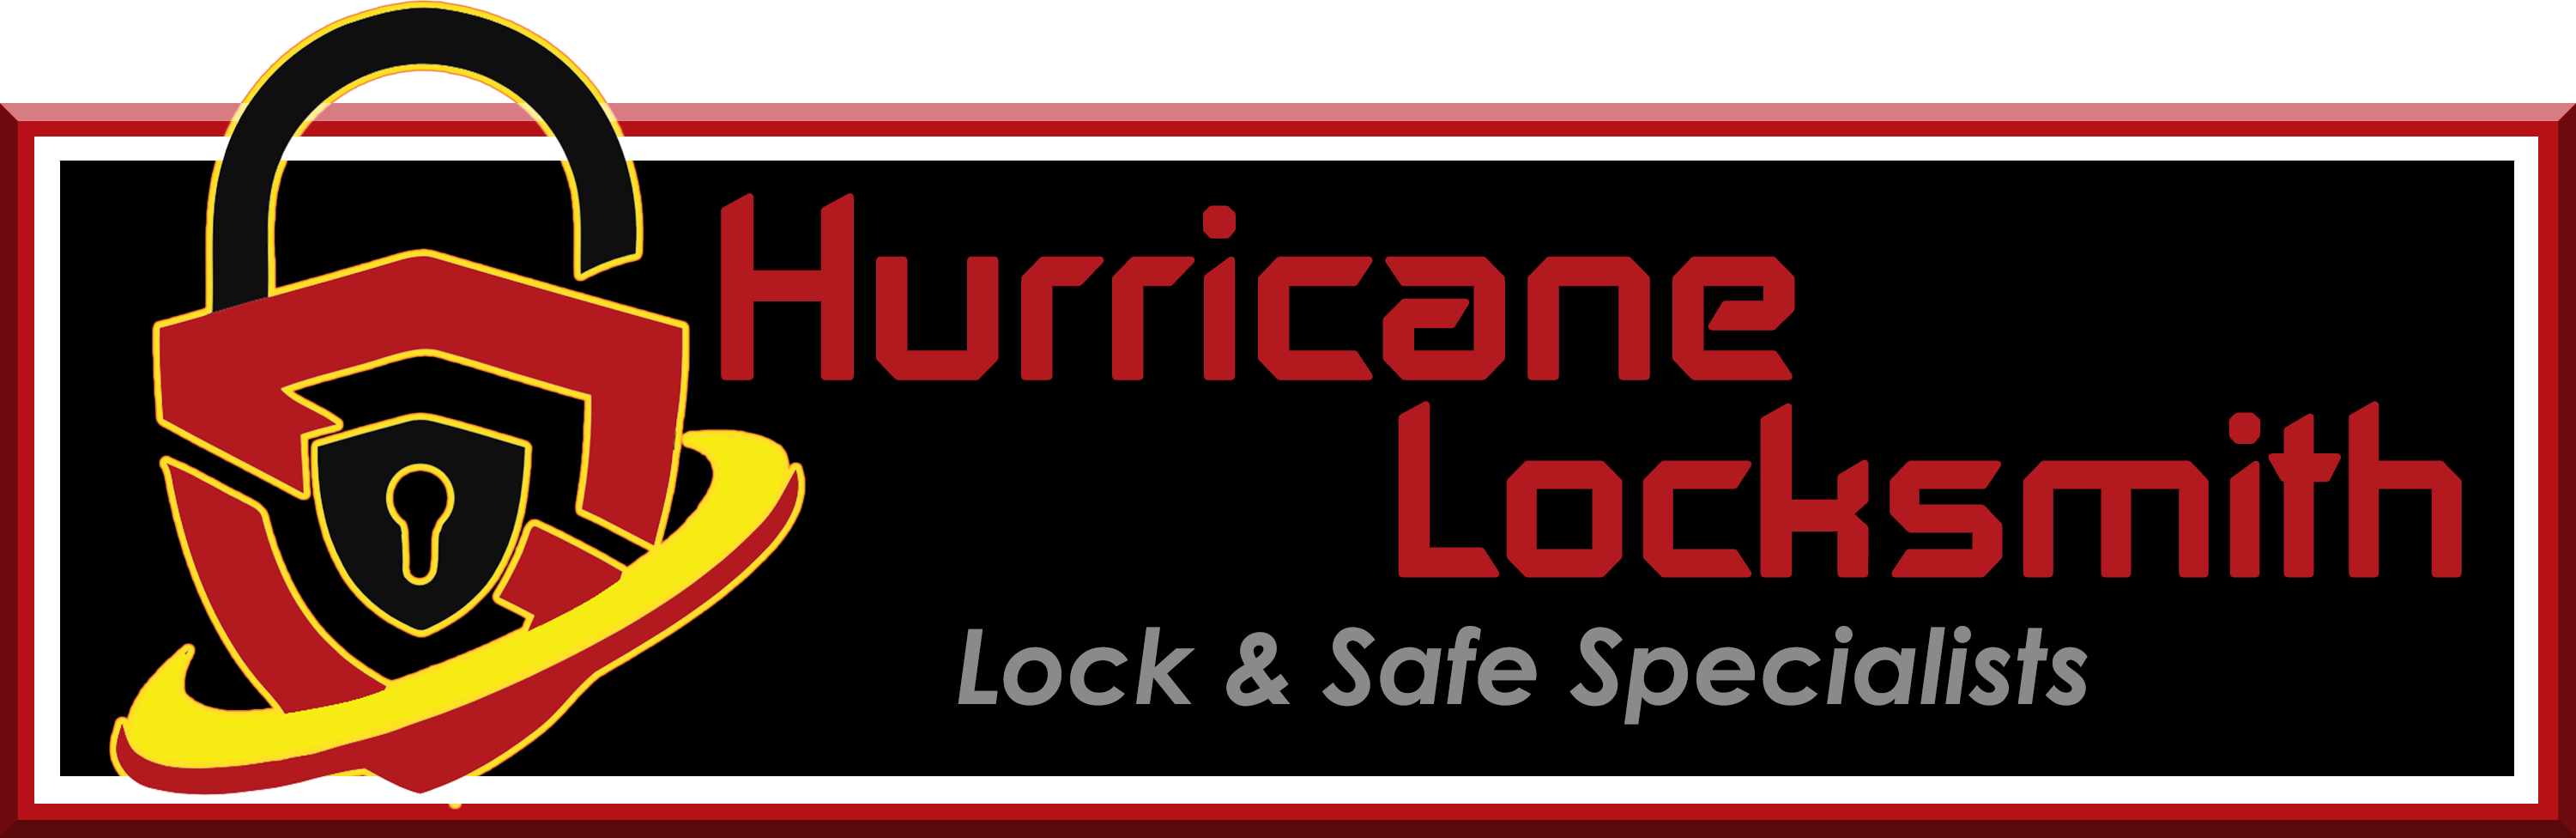 Hurricane Locksmith